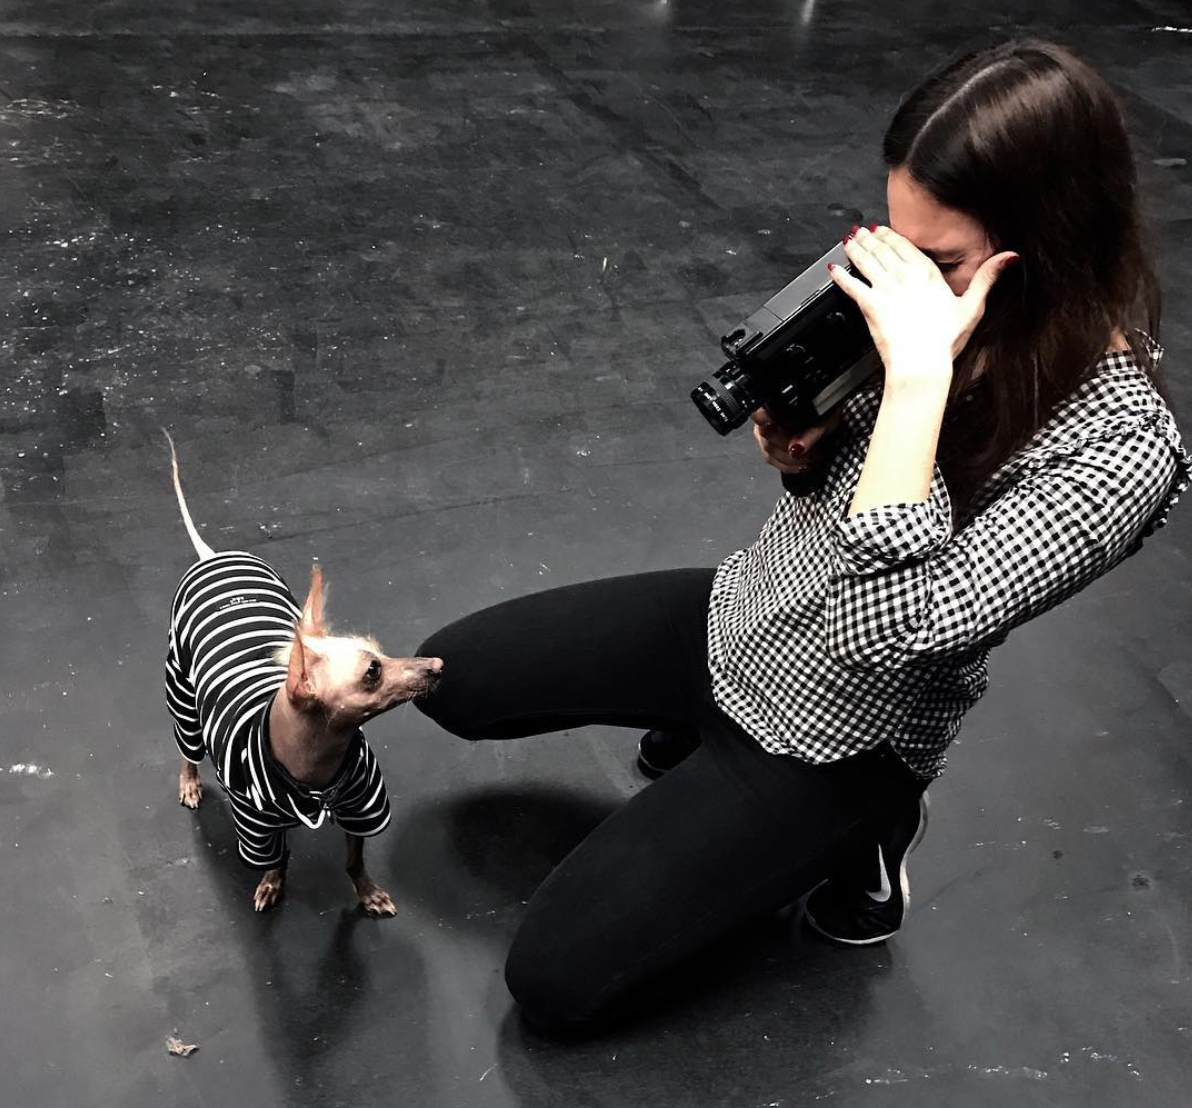 Laura Munoz (ASoF student) with Super 8 camera ft. Momia the dog